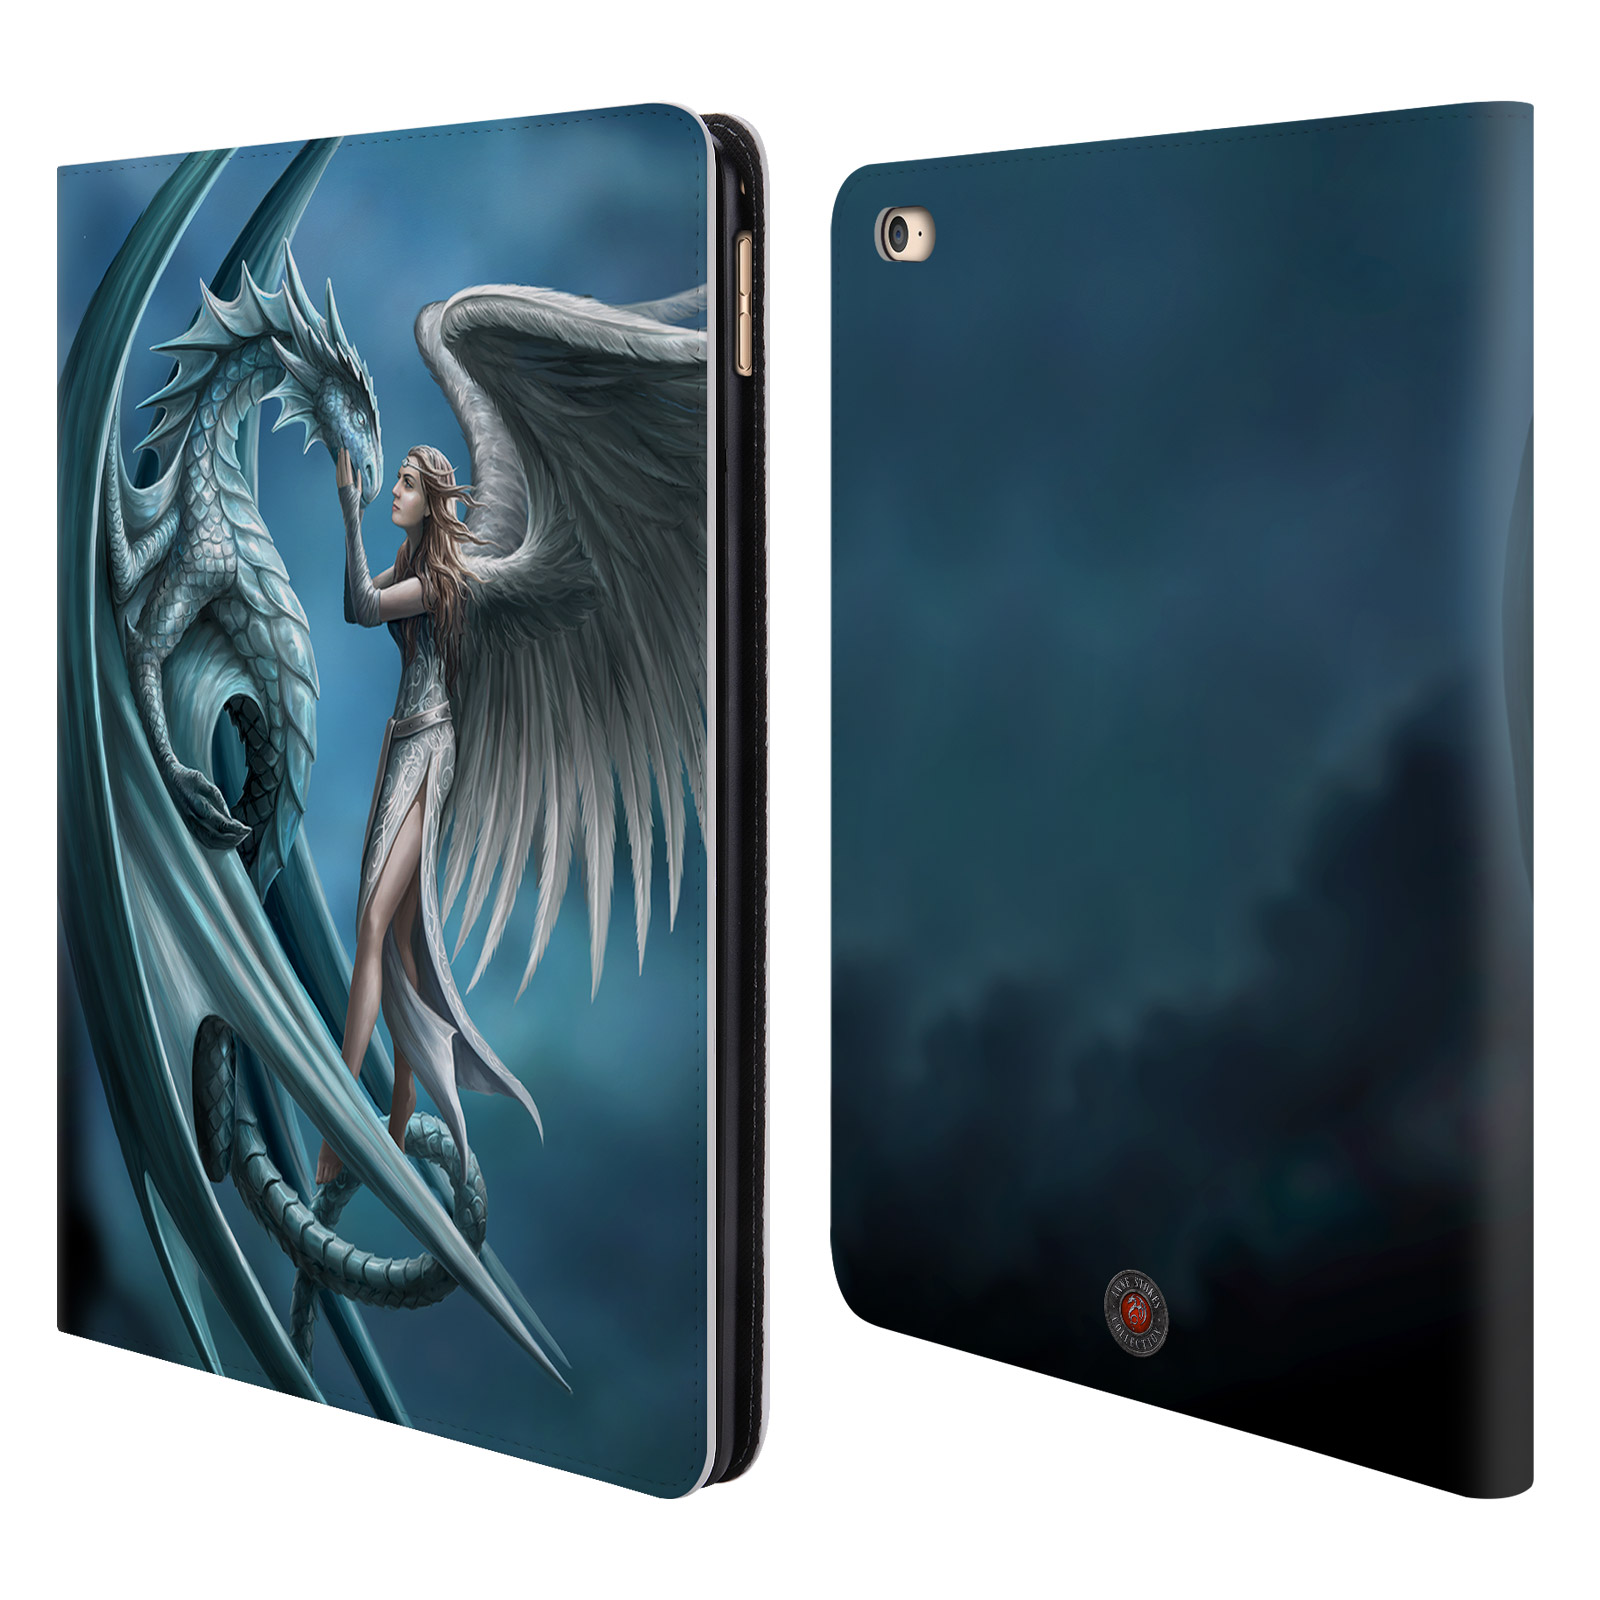 OFFICIAL ANNE STOKES DRAGON FRIENDSHIP LEATHER BOOK WALLET CASE COVER FOR APPLE IPAD